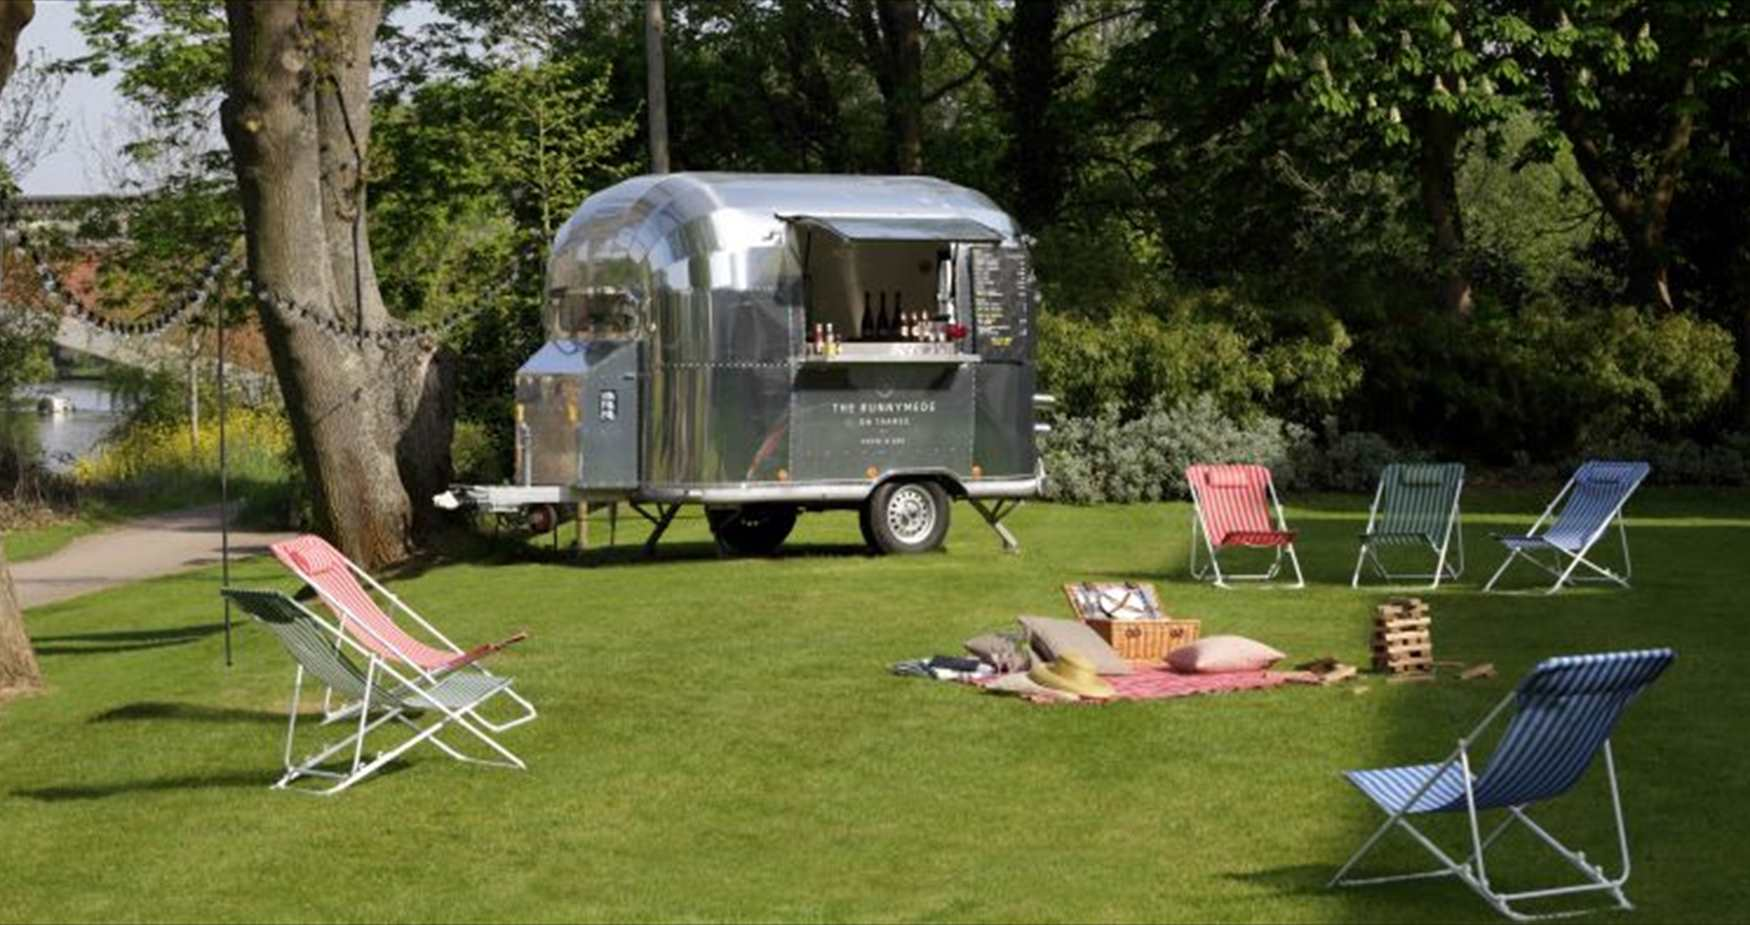 Picnic by airstream trailer at the Runnymede on Thames hotel by the River Thames near Windsor